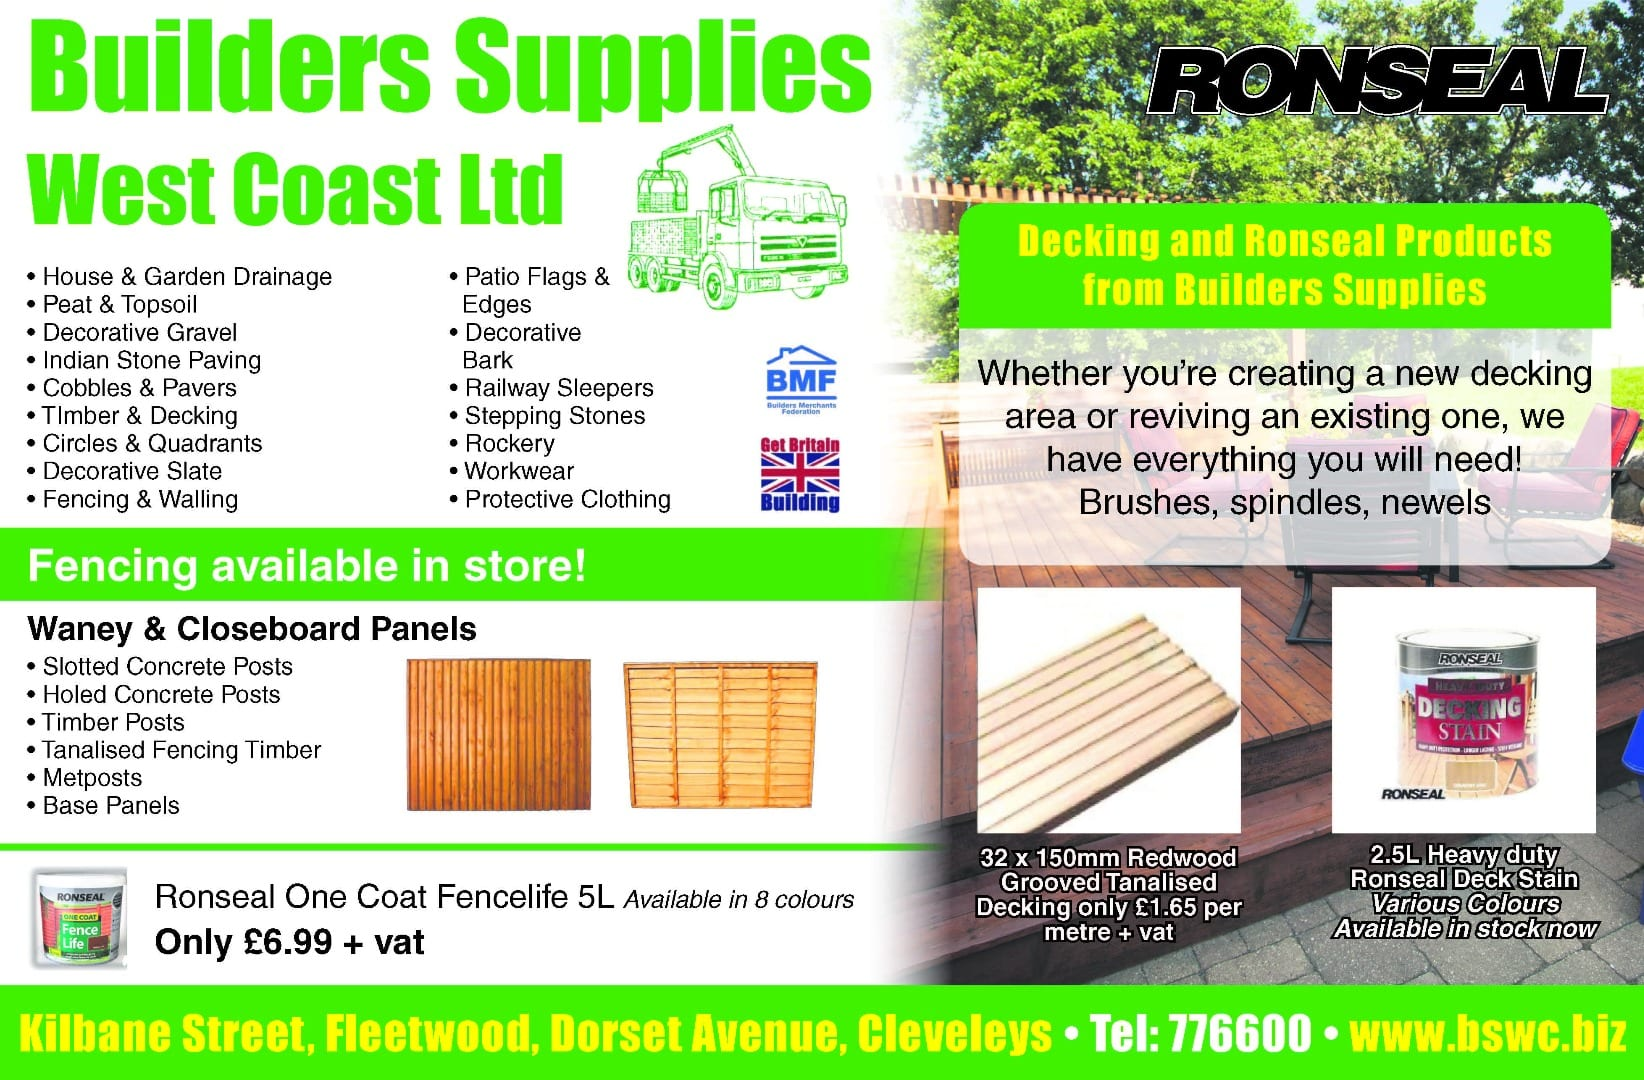 Decking, fencing and Ronseal products